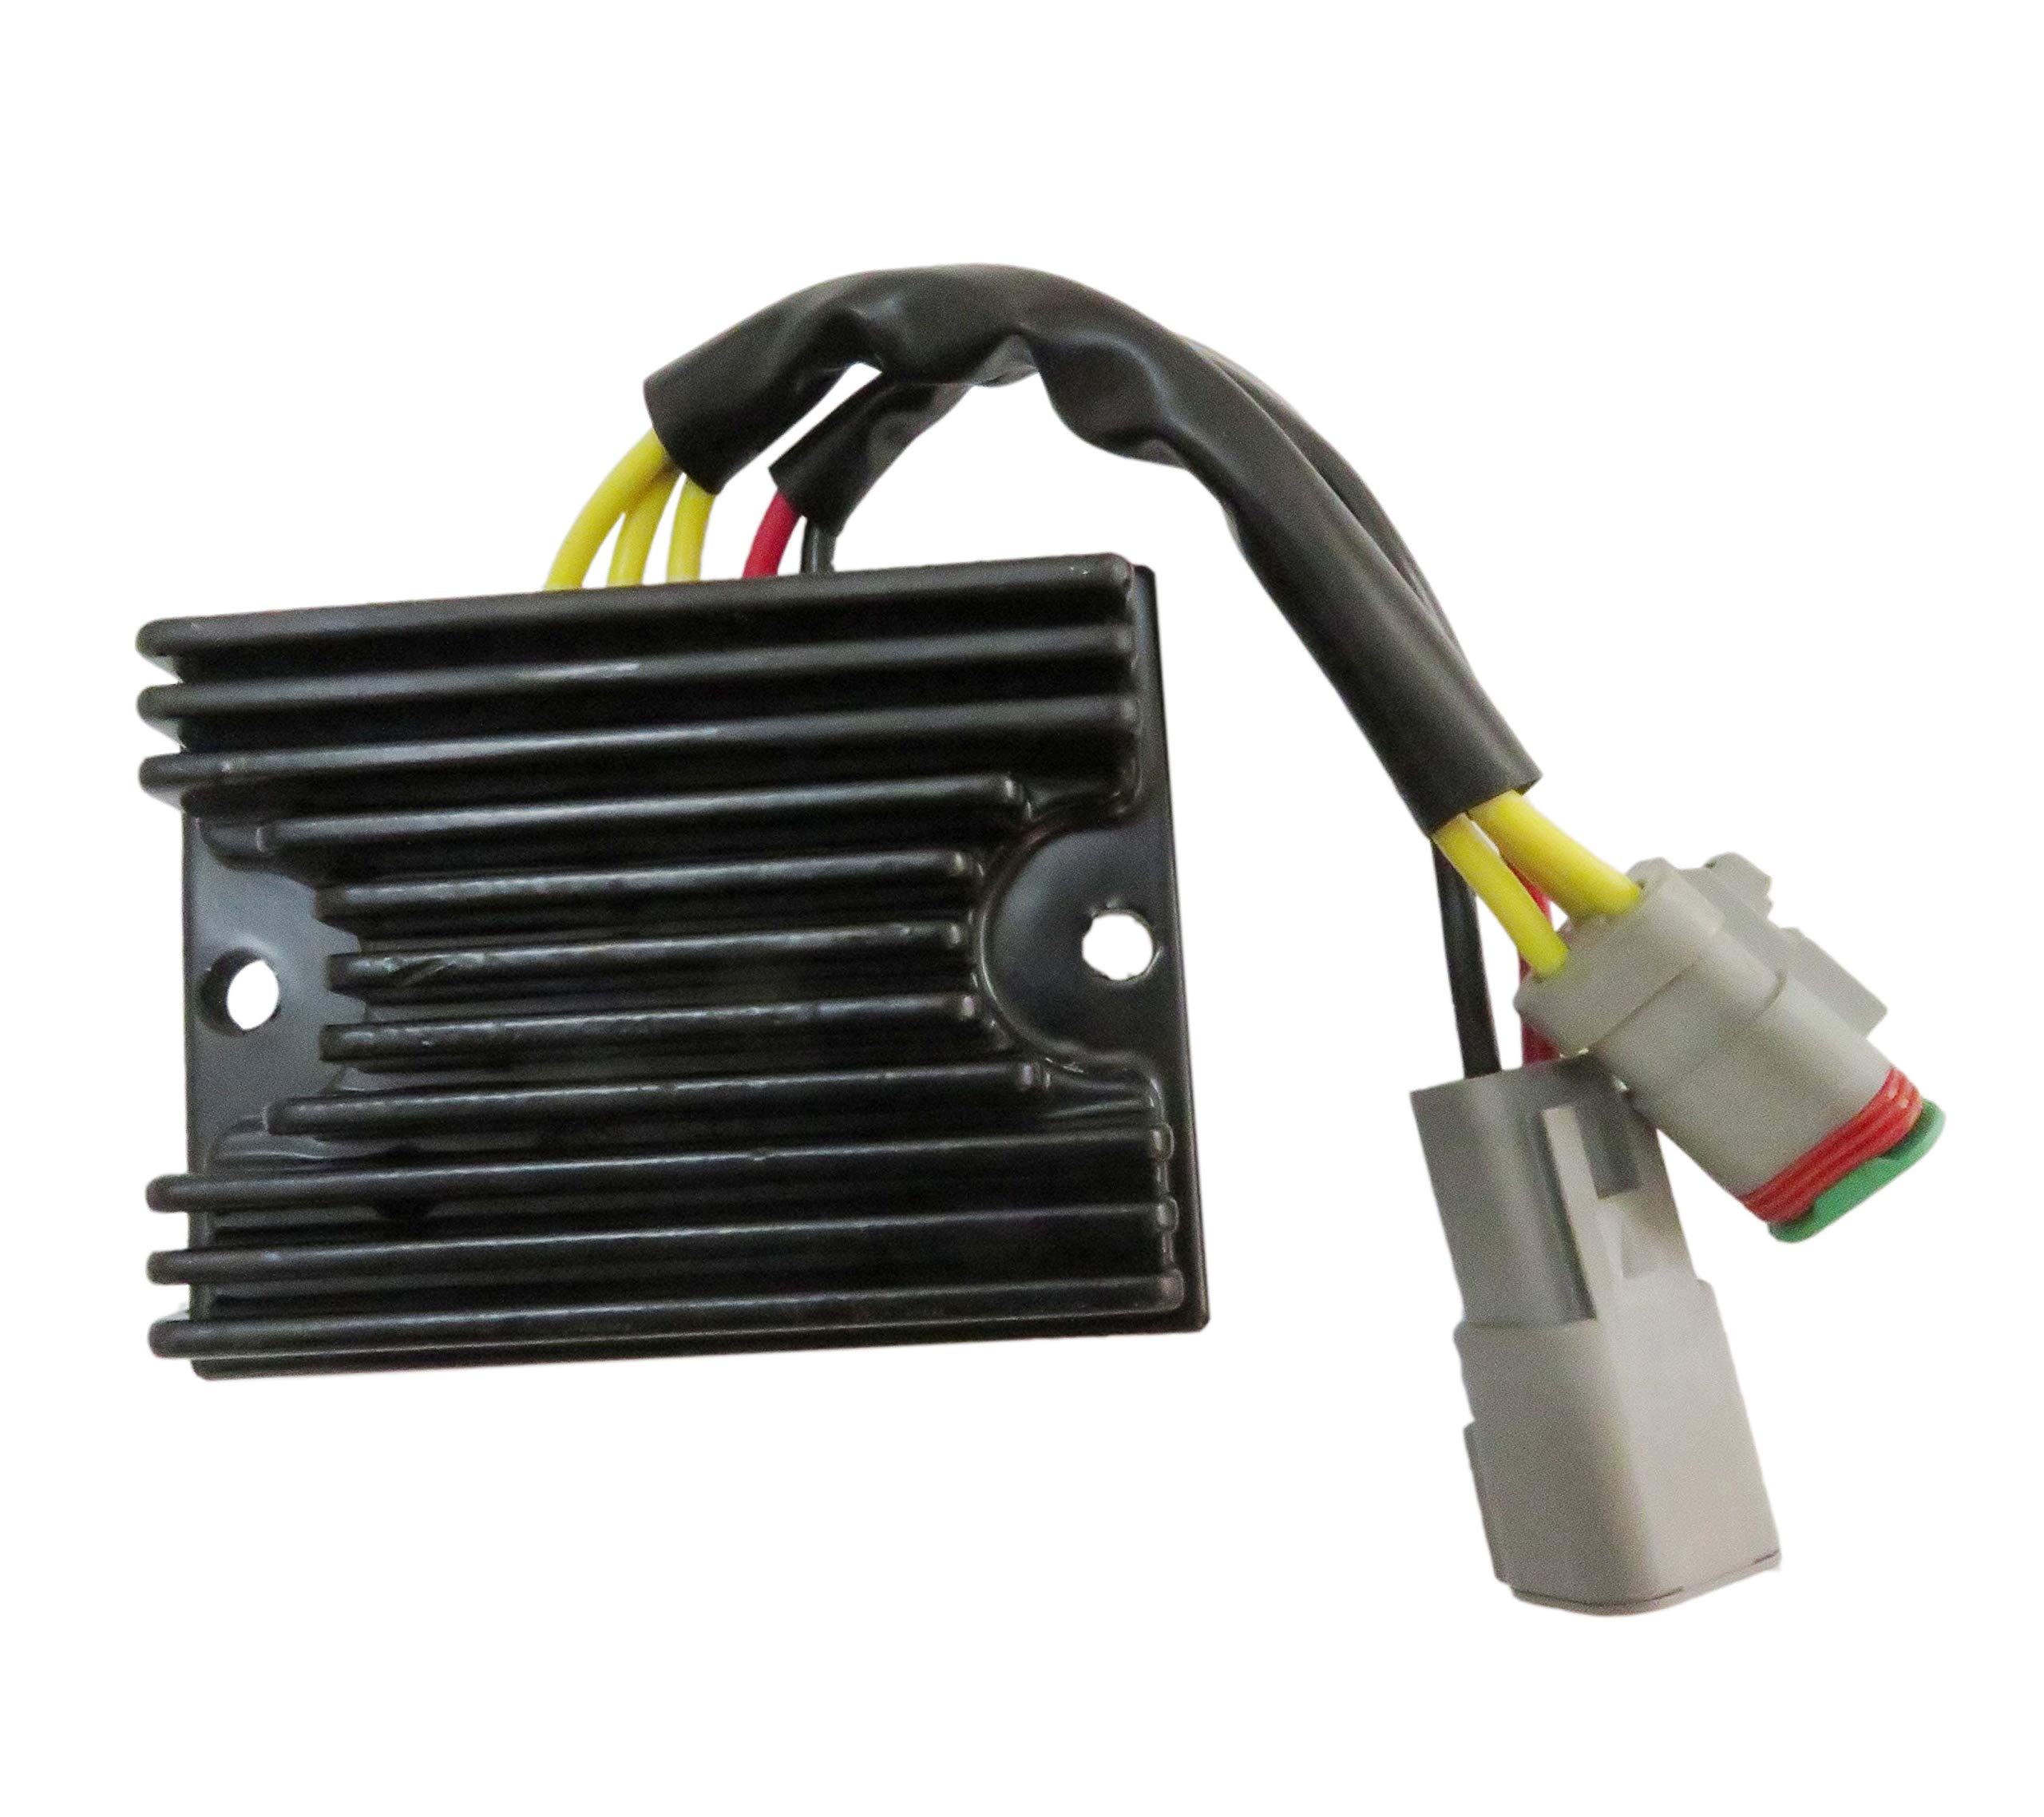 High Performance 278-001-581 278-001-969 Voltage Regulator Rectifier For SEA-DOO PERSONAL WATERCRAFT GTX 4-TEC 2002-2007 GTX Wake 2005-2007 RXP 2004-2007 RXT 2005-2007 by Carb Omar